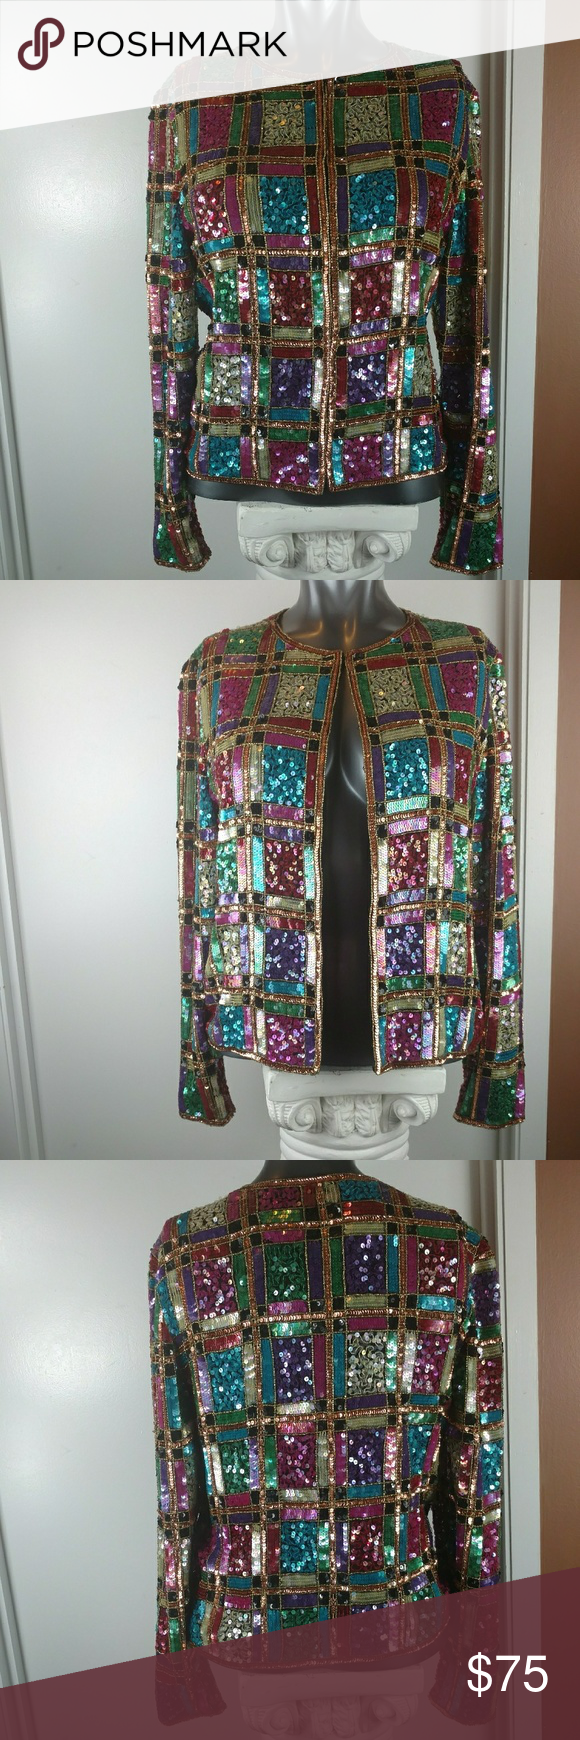 Multi Colored Evening Jackets for Women